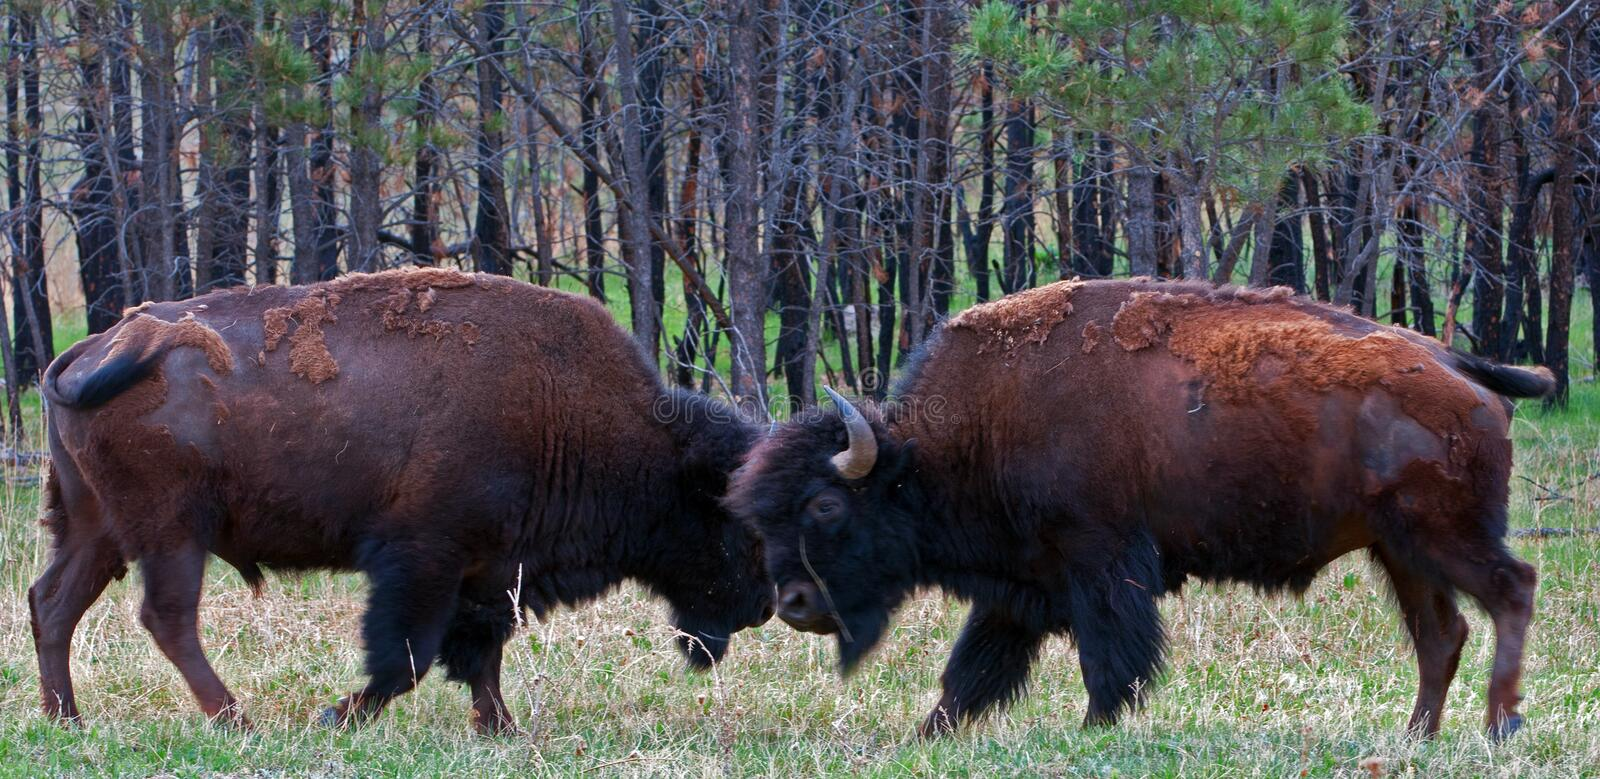 Young Bison Buffalo Bulls Sparring in Wind Cave National Park. American Bison Buffalo Sparring in Wind Cave National Park in the Black Hills of South Dakota USA royalty free stock photos